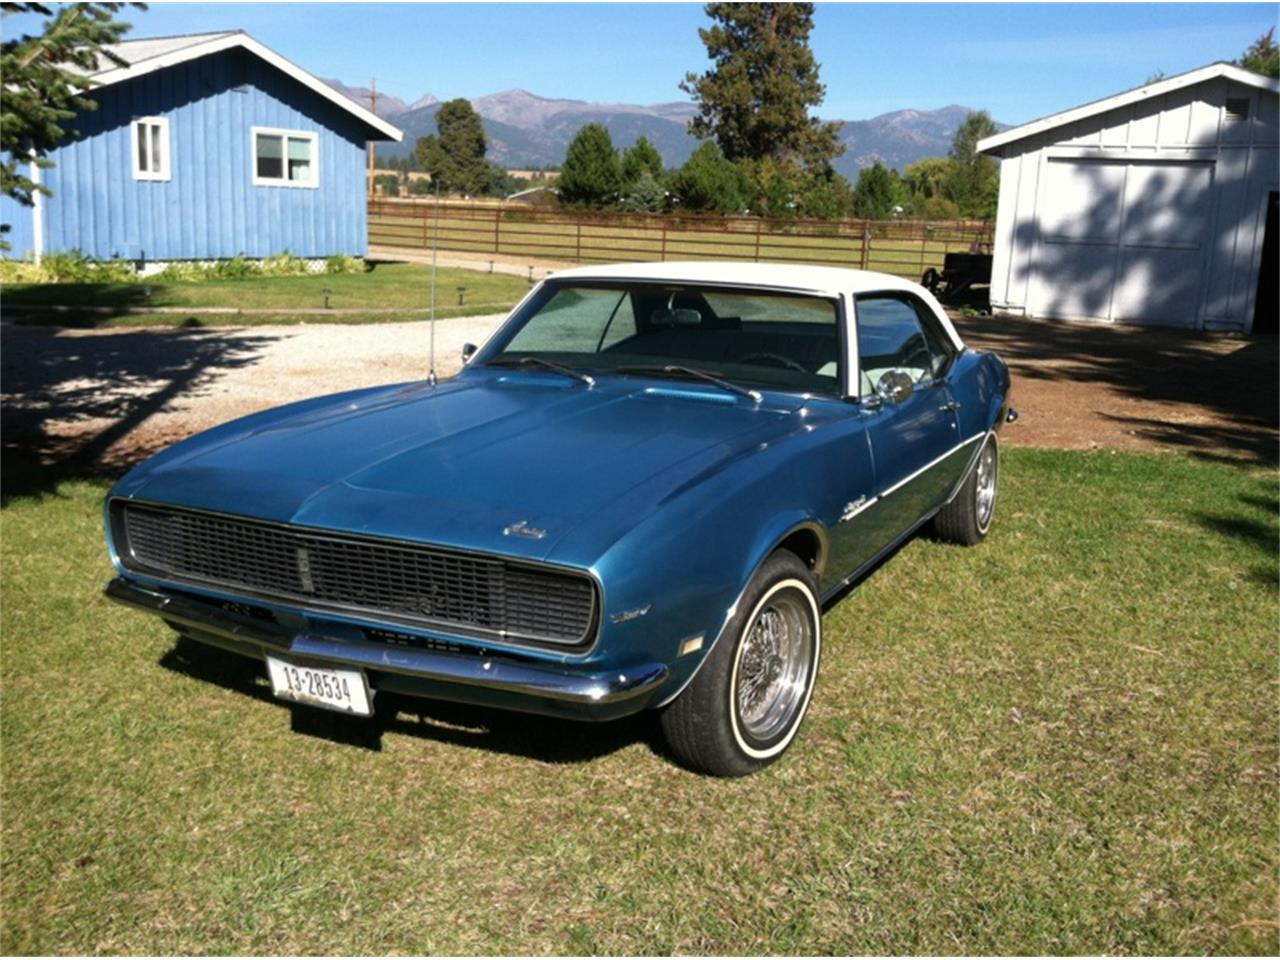 1968 Chevrolet Camaro Rs For Sale Cc 1149031 327 Large Picture Of Classic 2500000 Offered By A Private Seller Omlj